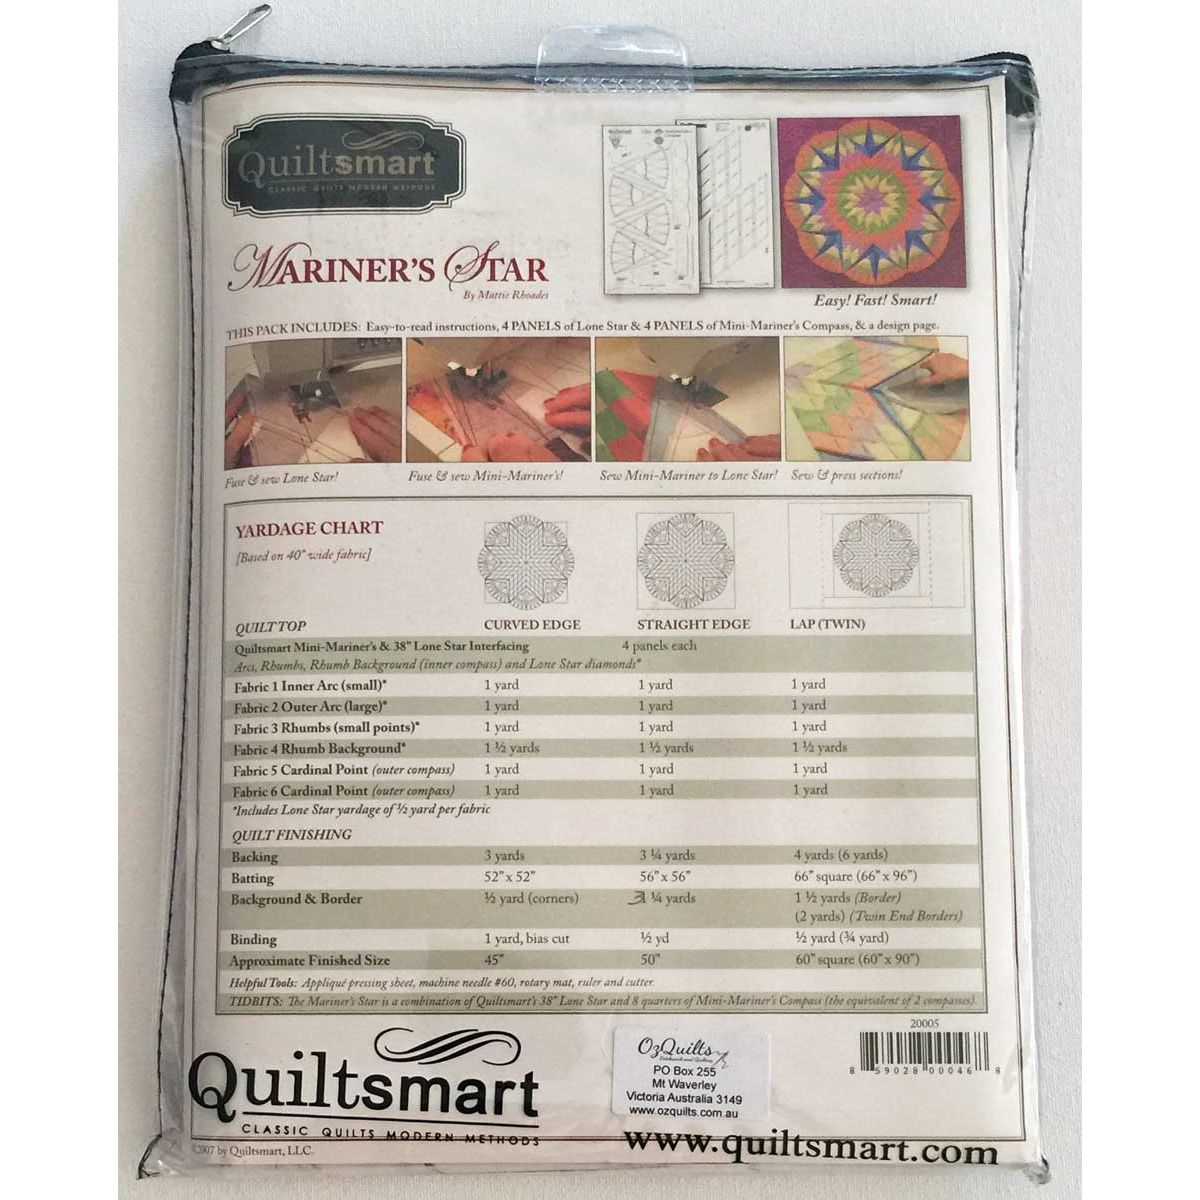 quiltsmart lone star instructions